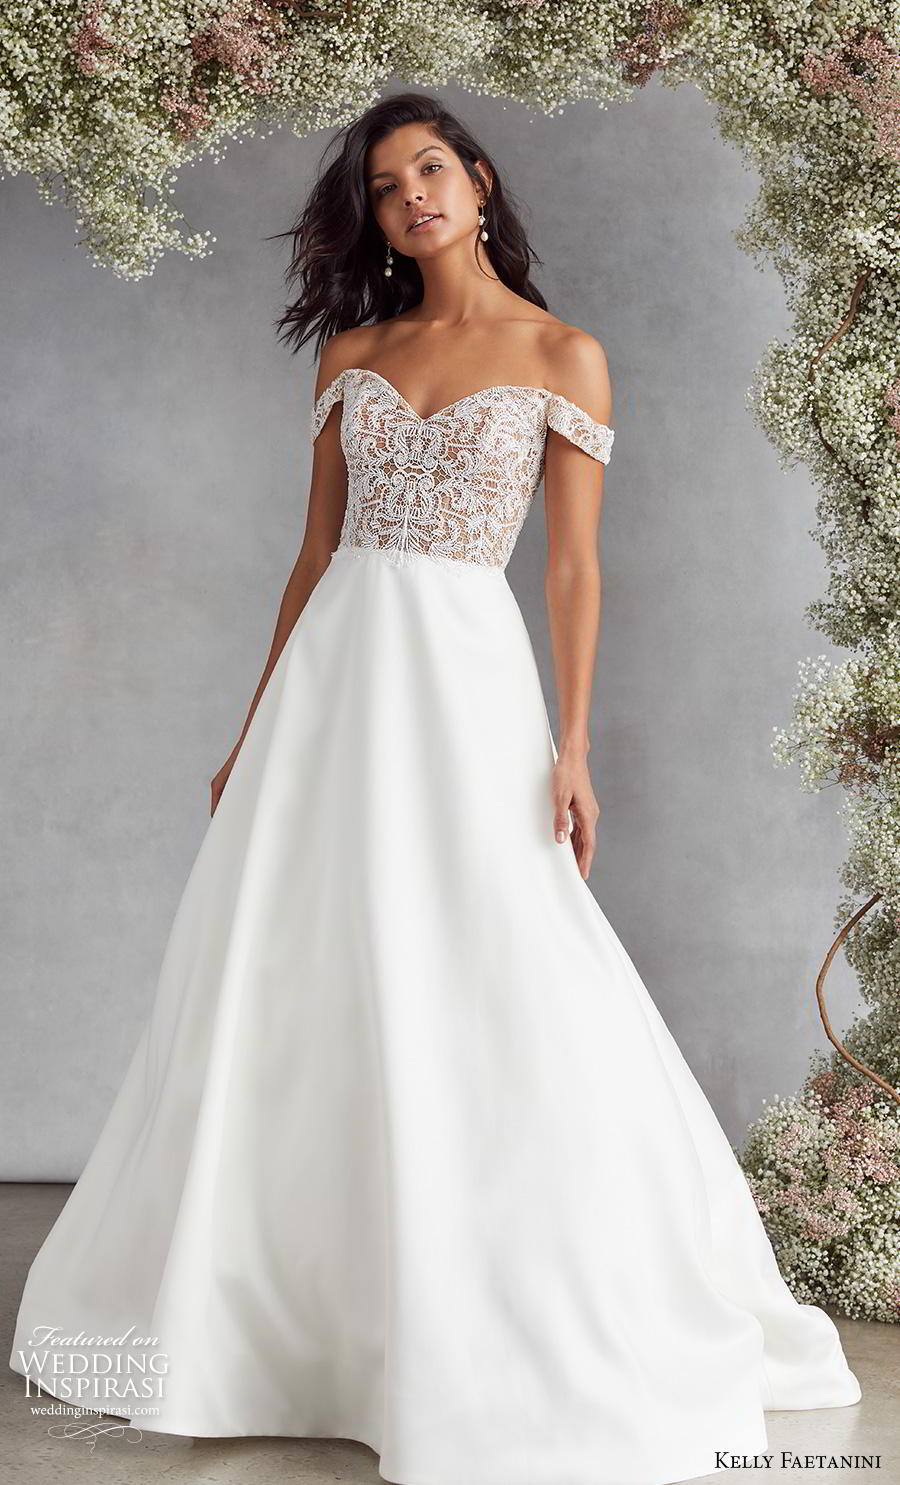 kelly faetanini fall 2020 bridal off the shoulder sweetheart neckline heavily embellished bodice plain skirt elegant classic a  line wedding dress v back medium train (3) mv